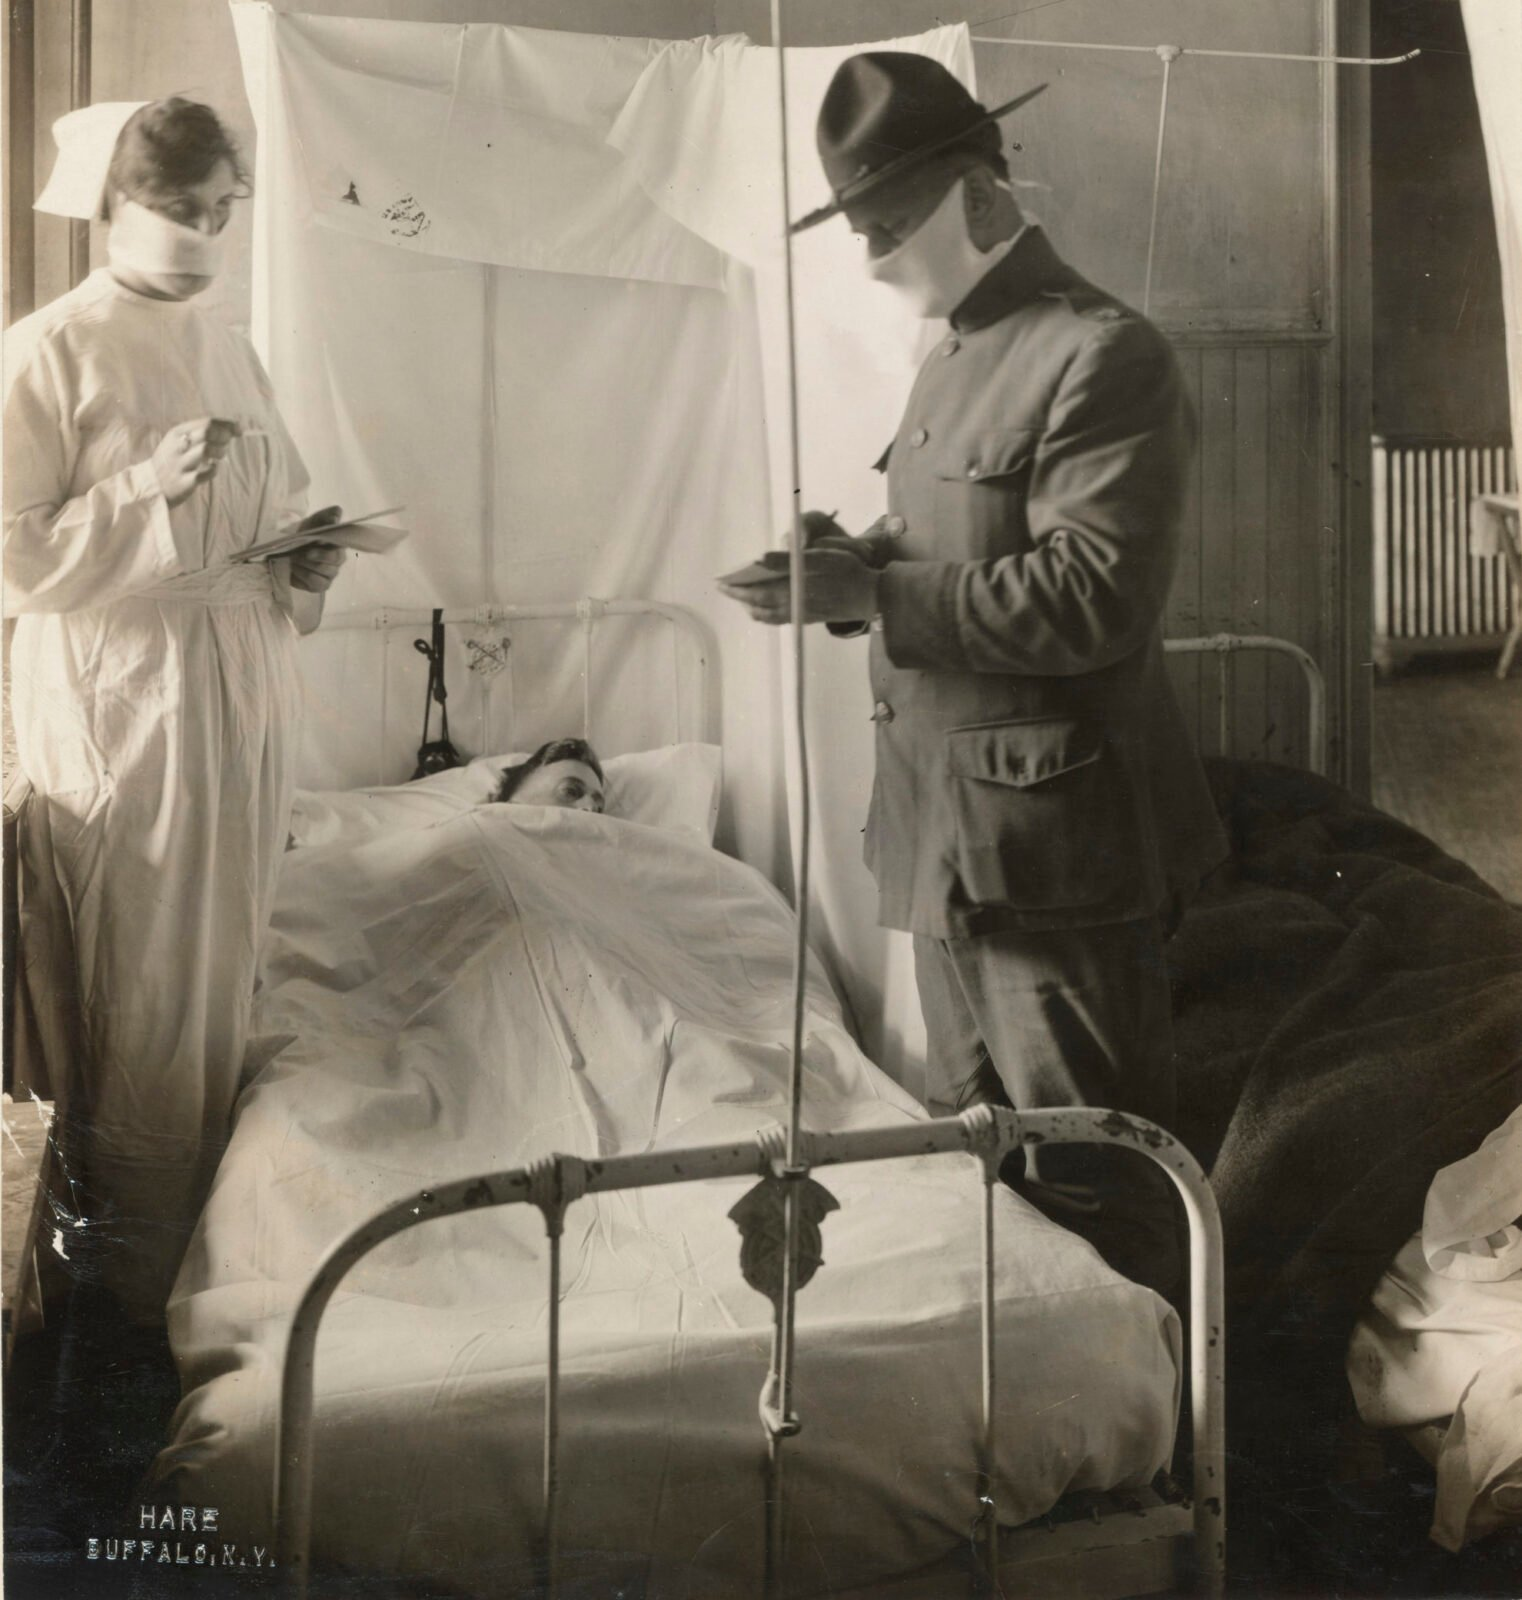 A nurse and a military officer wearing face masks take notes will standing on opposite sides of a flu patient's hospital bed